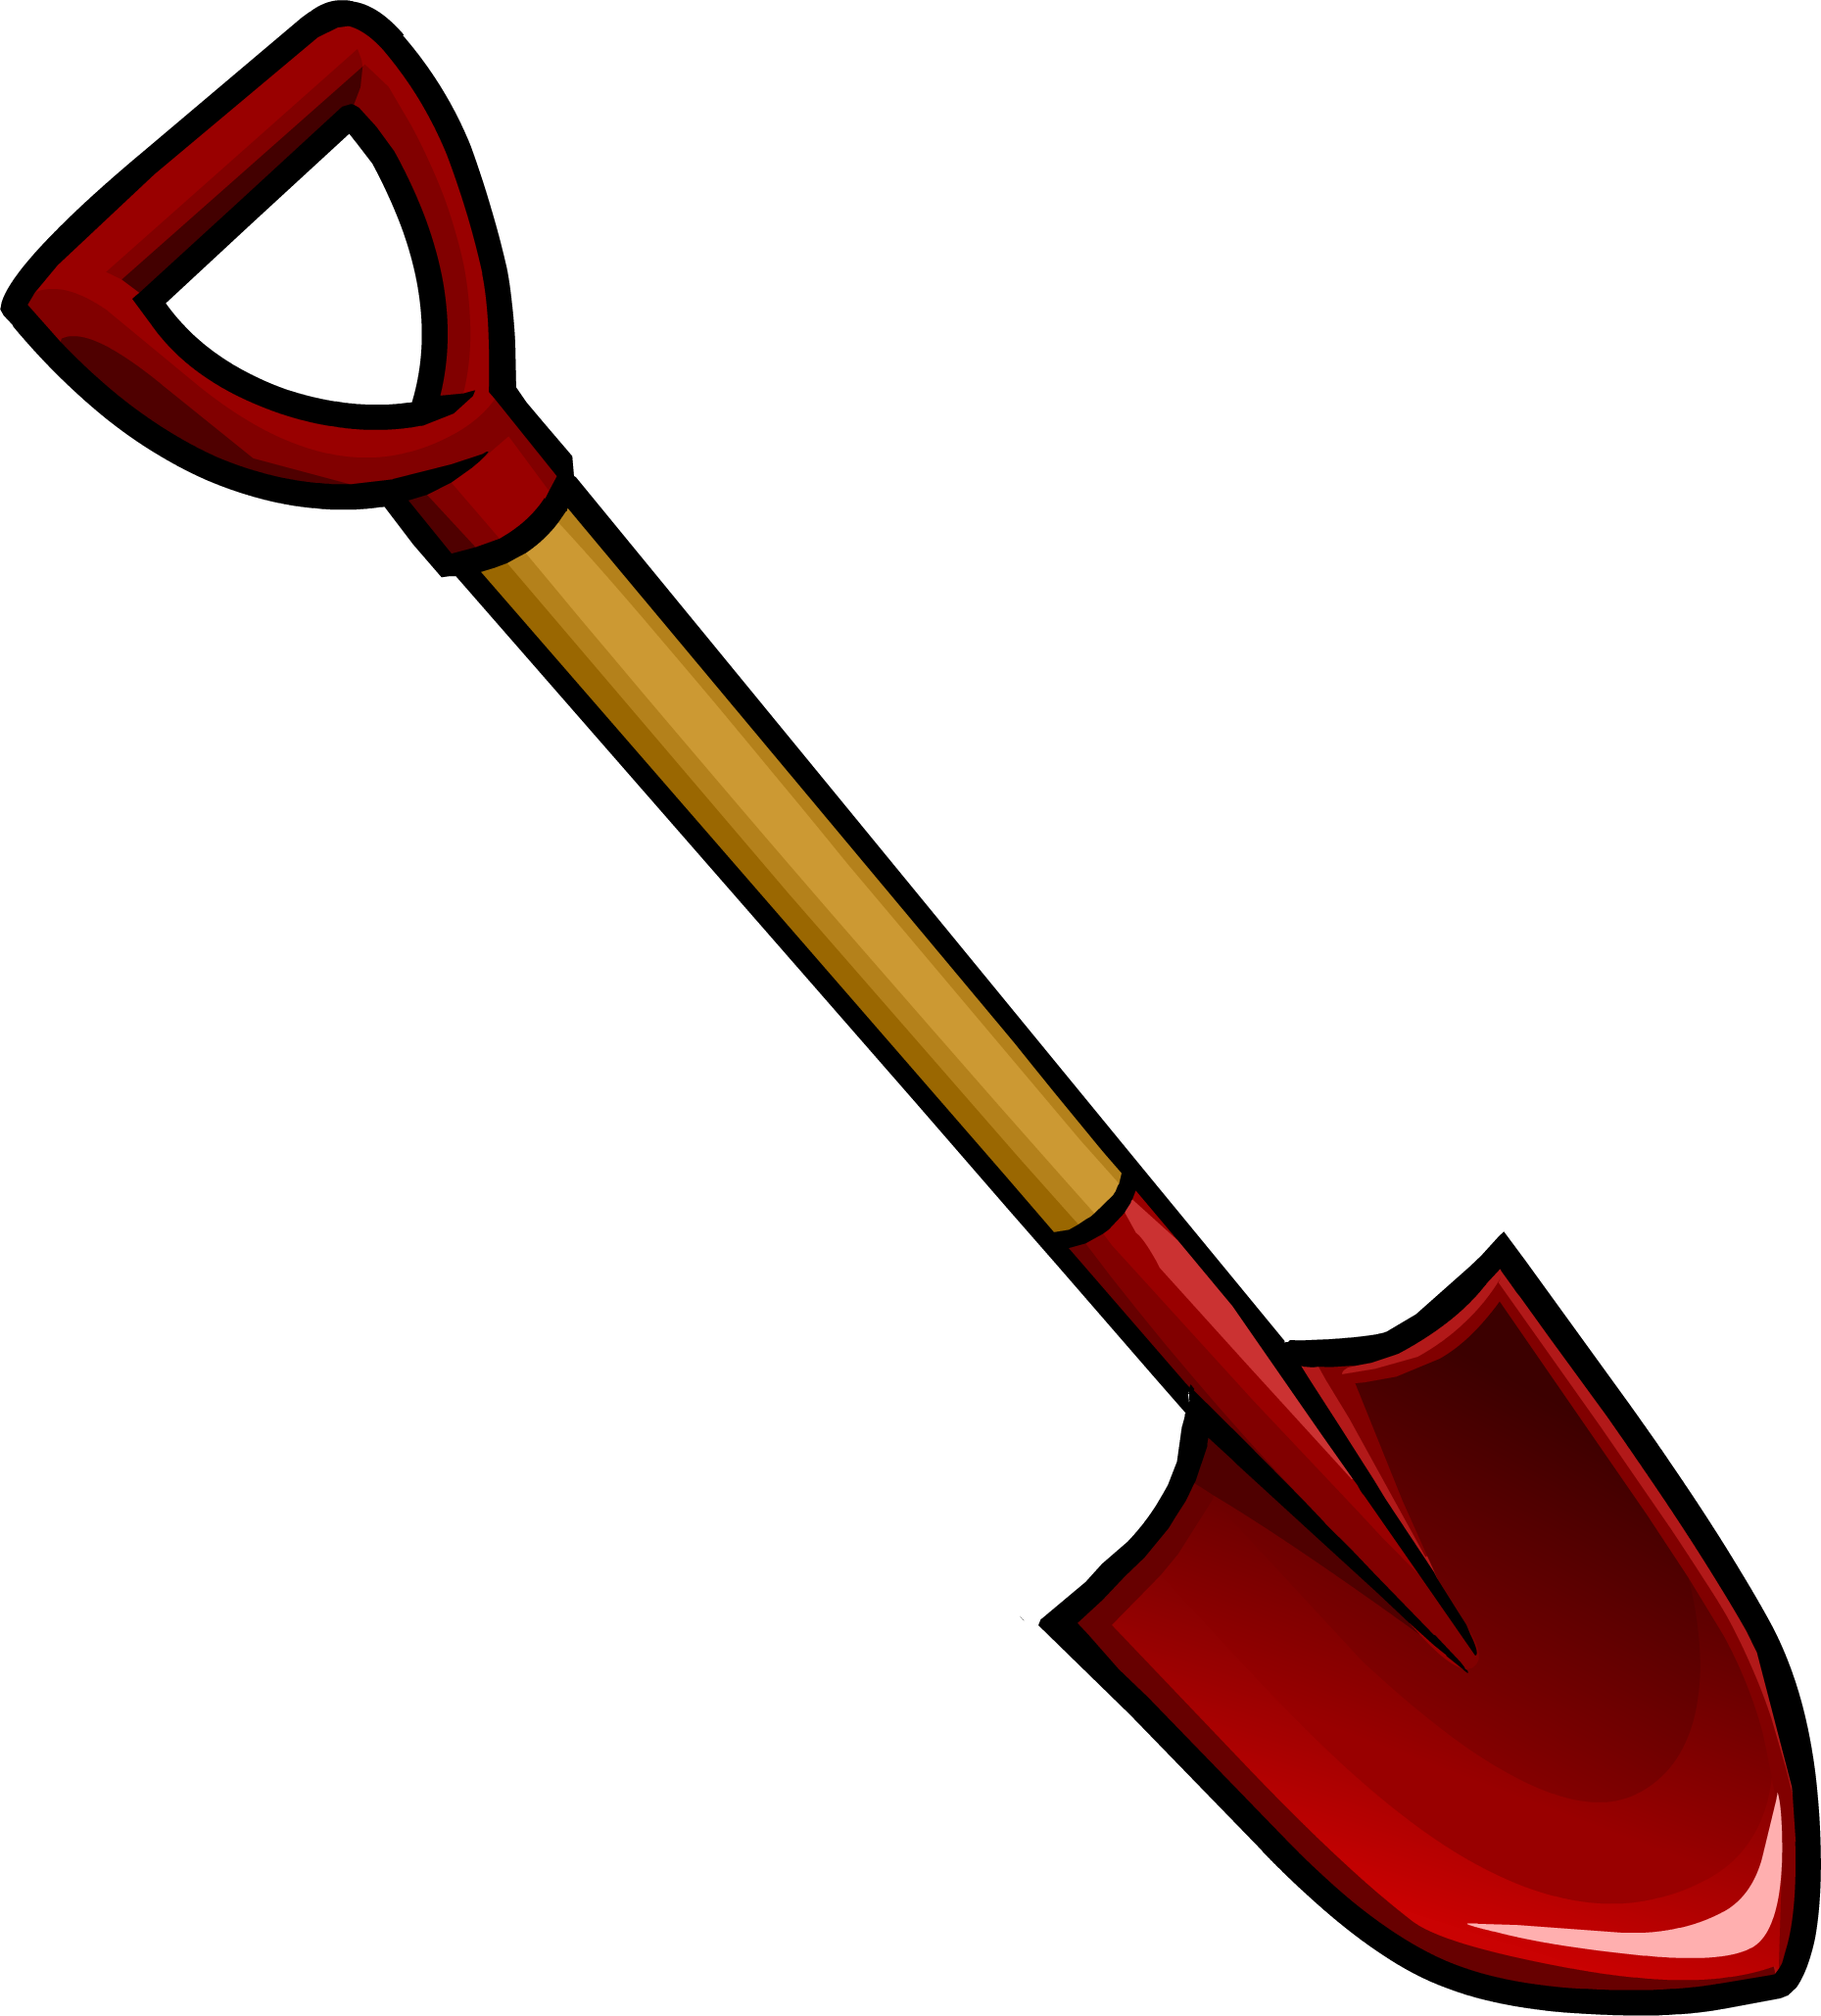 Garden shovel club penguin wiki fandom powered by wikia for Gardening tools wikipedia